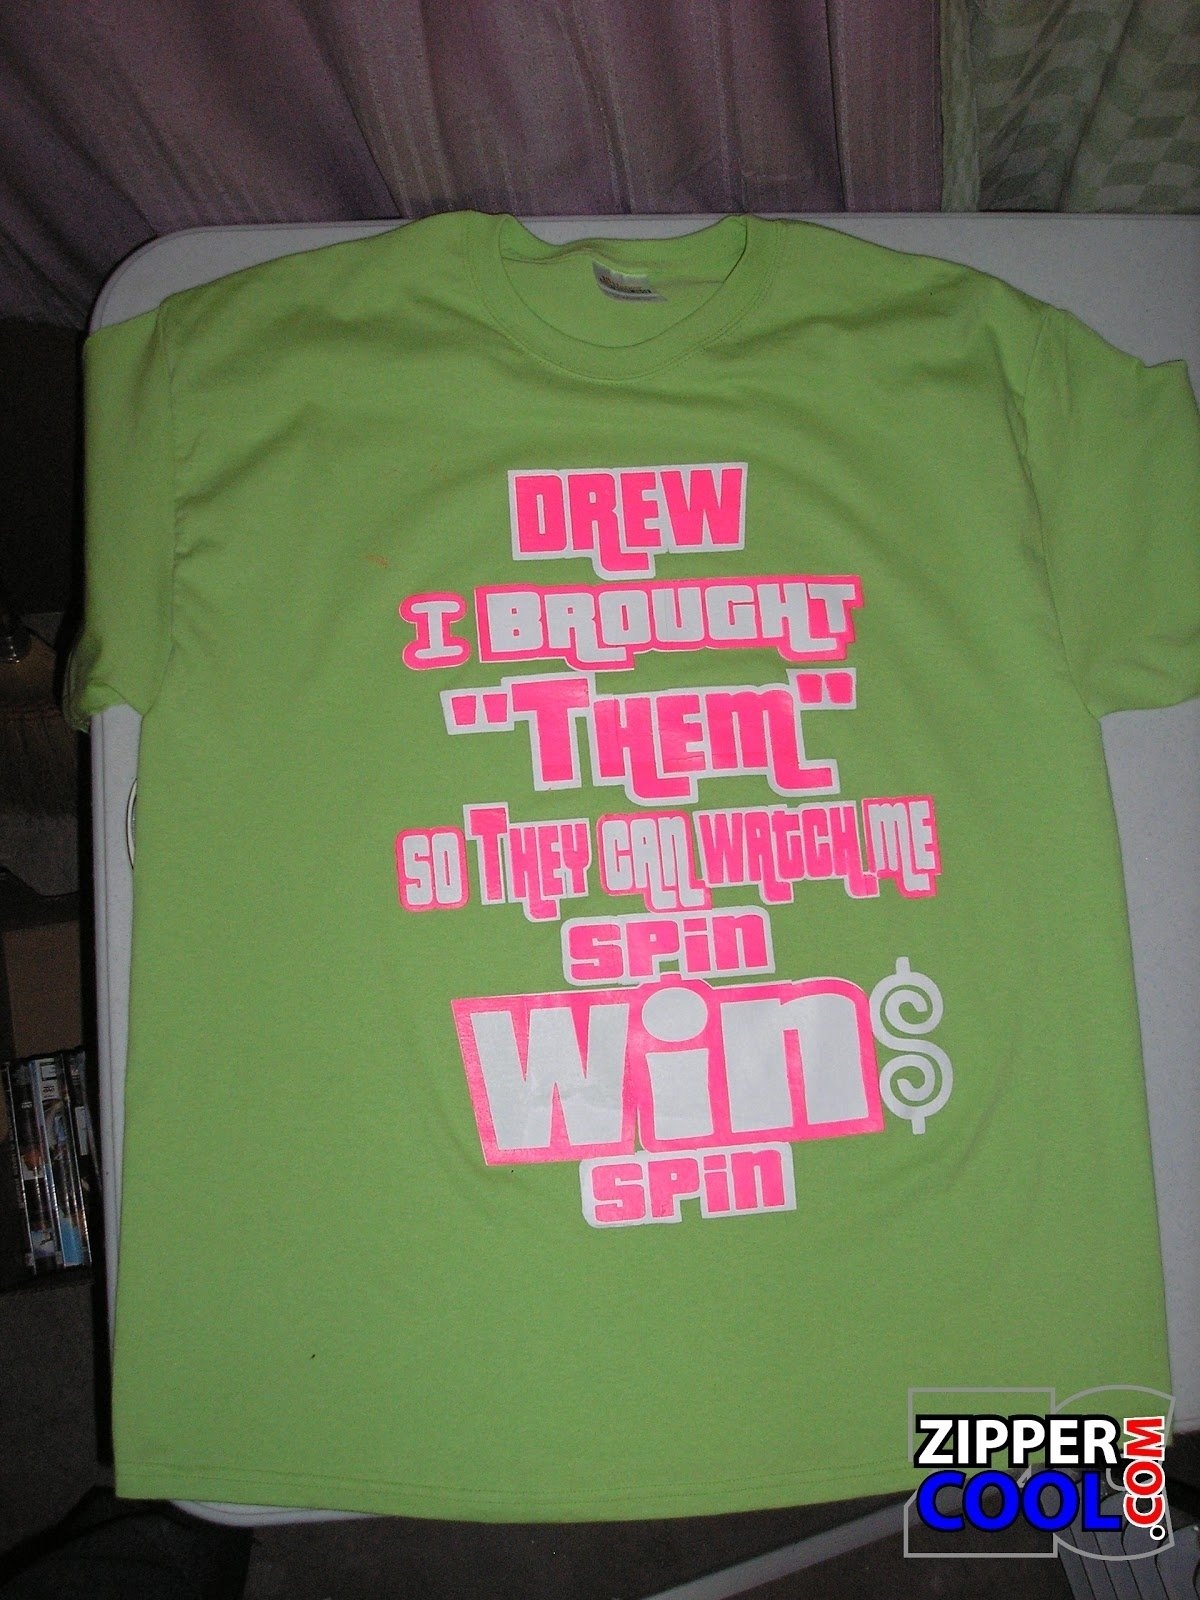 10 Lovely Price Is Right T Shirt Ideas image result for price is right shirt ideas price is right shirts 1